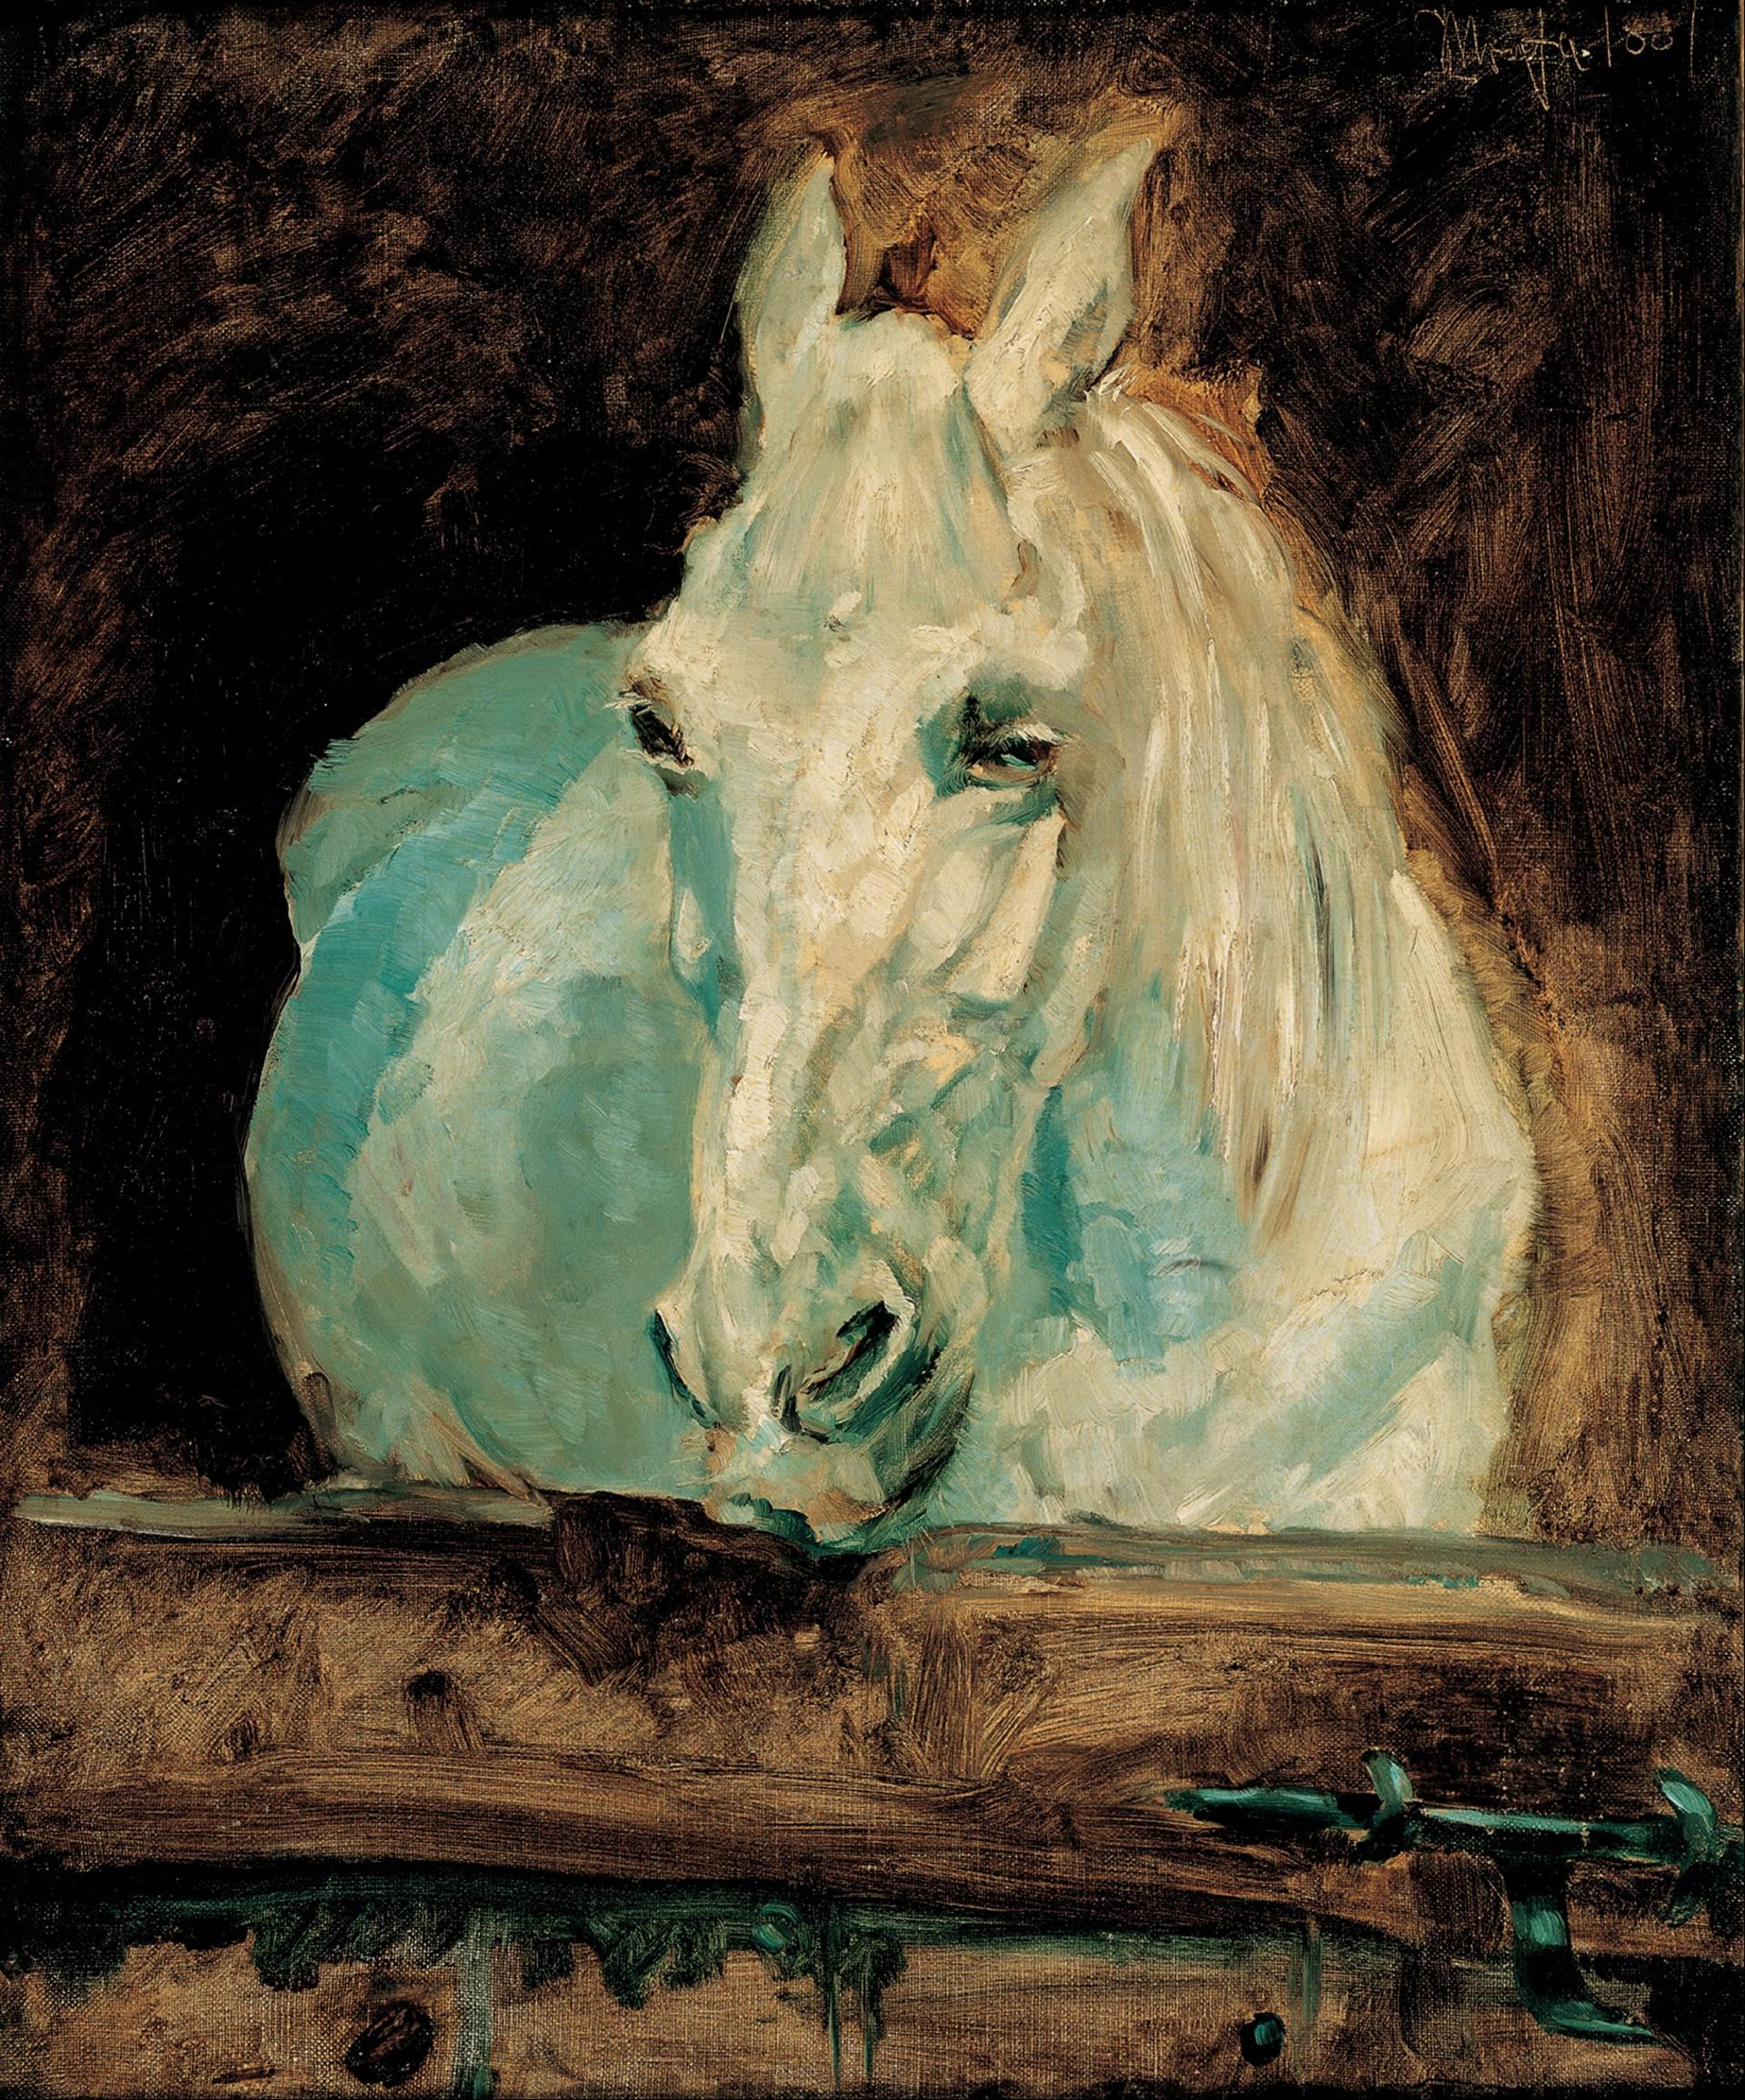 0052_亨利德图卢兹罗特列克_Henri Toulouse Lautrec 1864 - 1901 French-The White Horse Gaz_1819x2189PX_TIF_97DPI_11_0